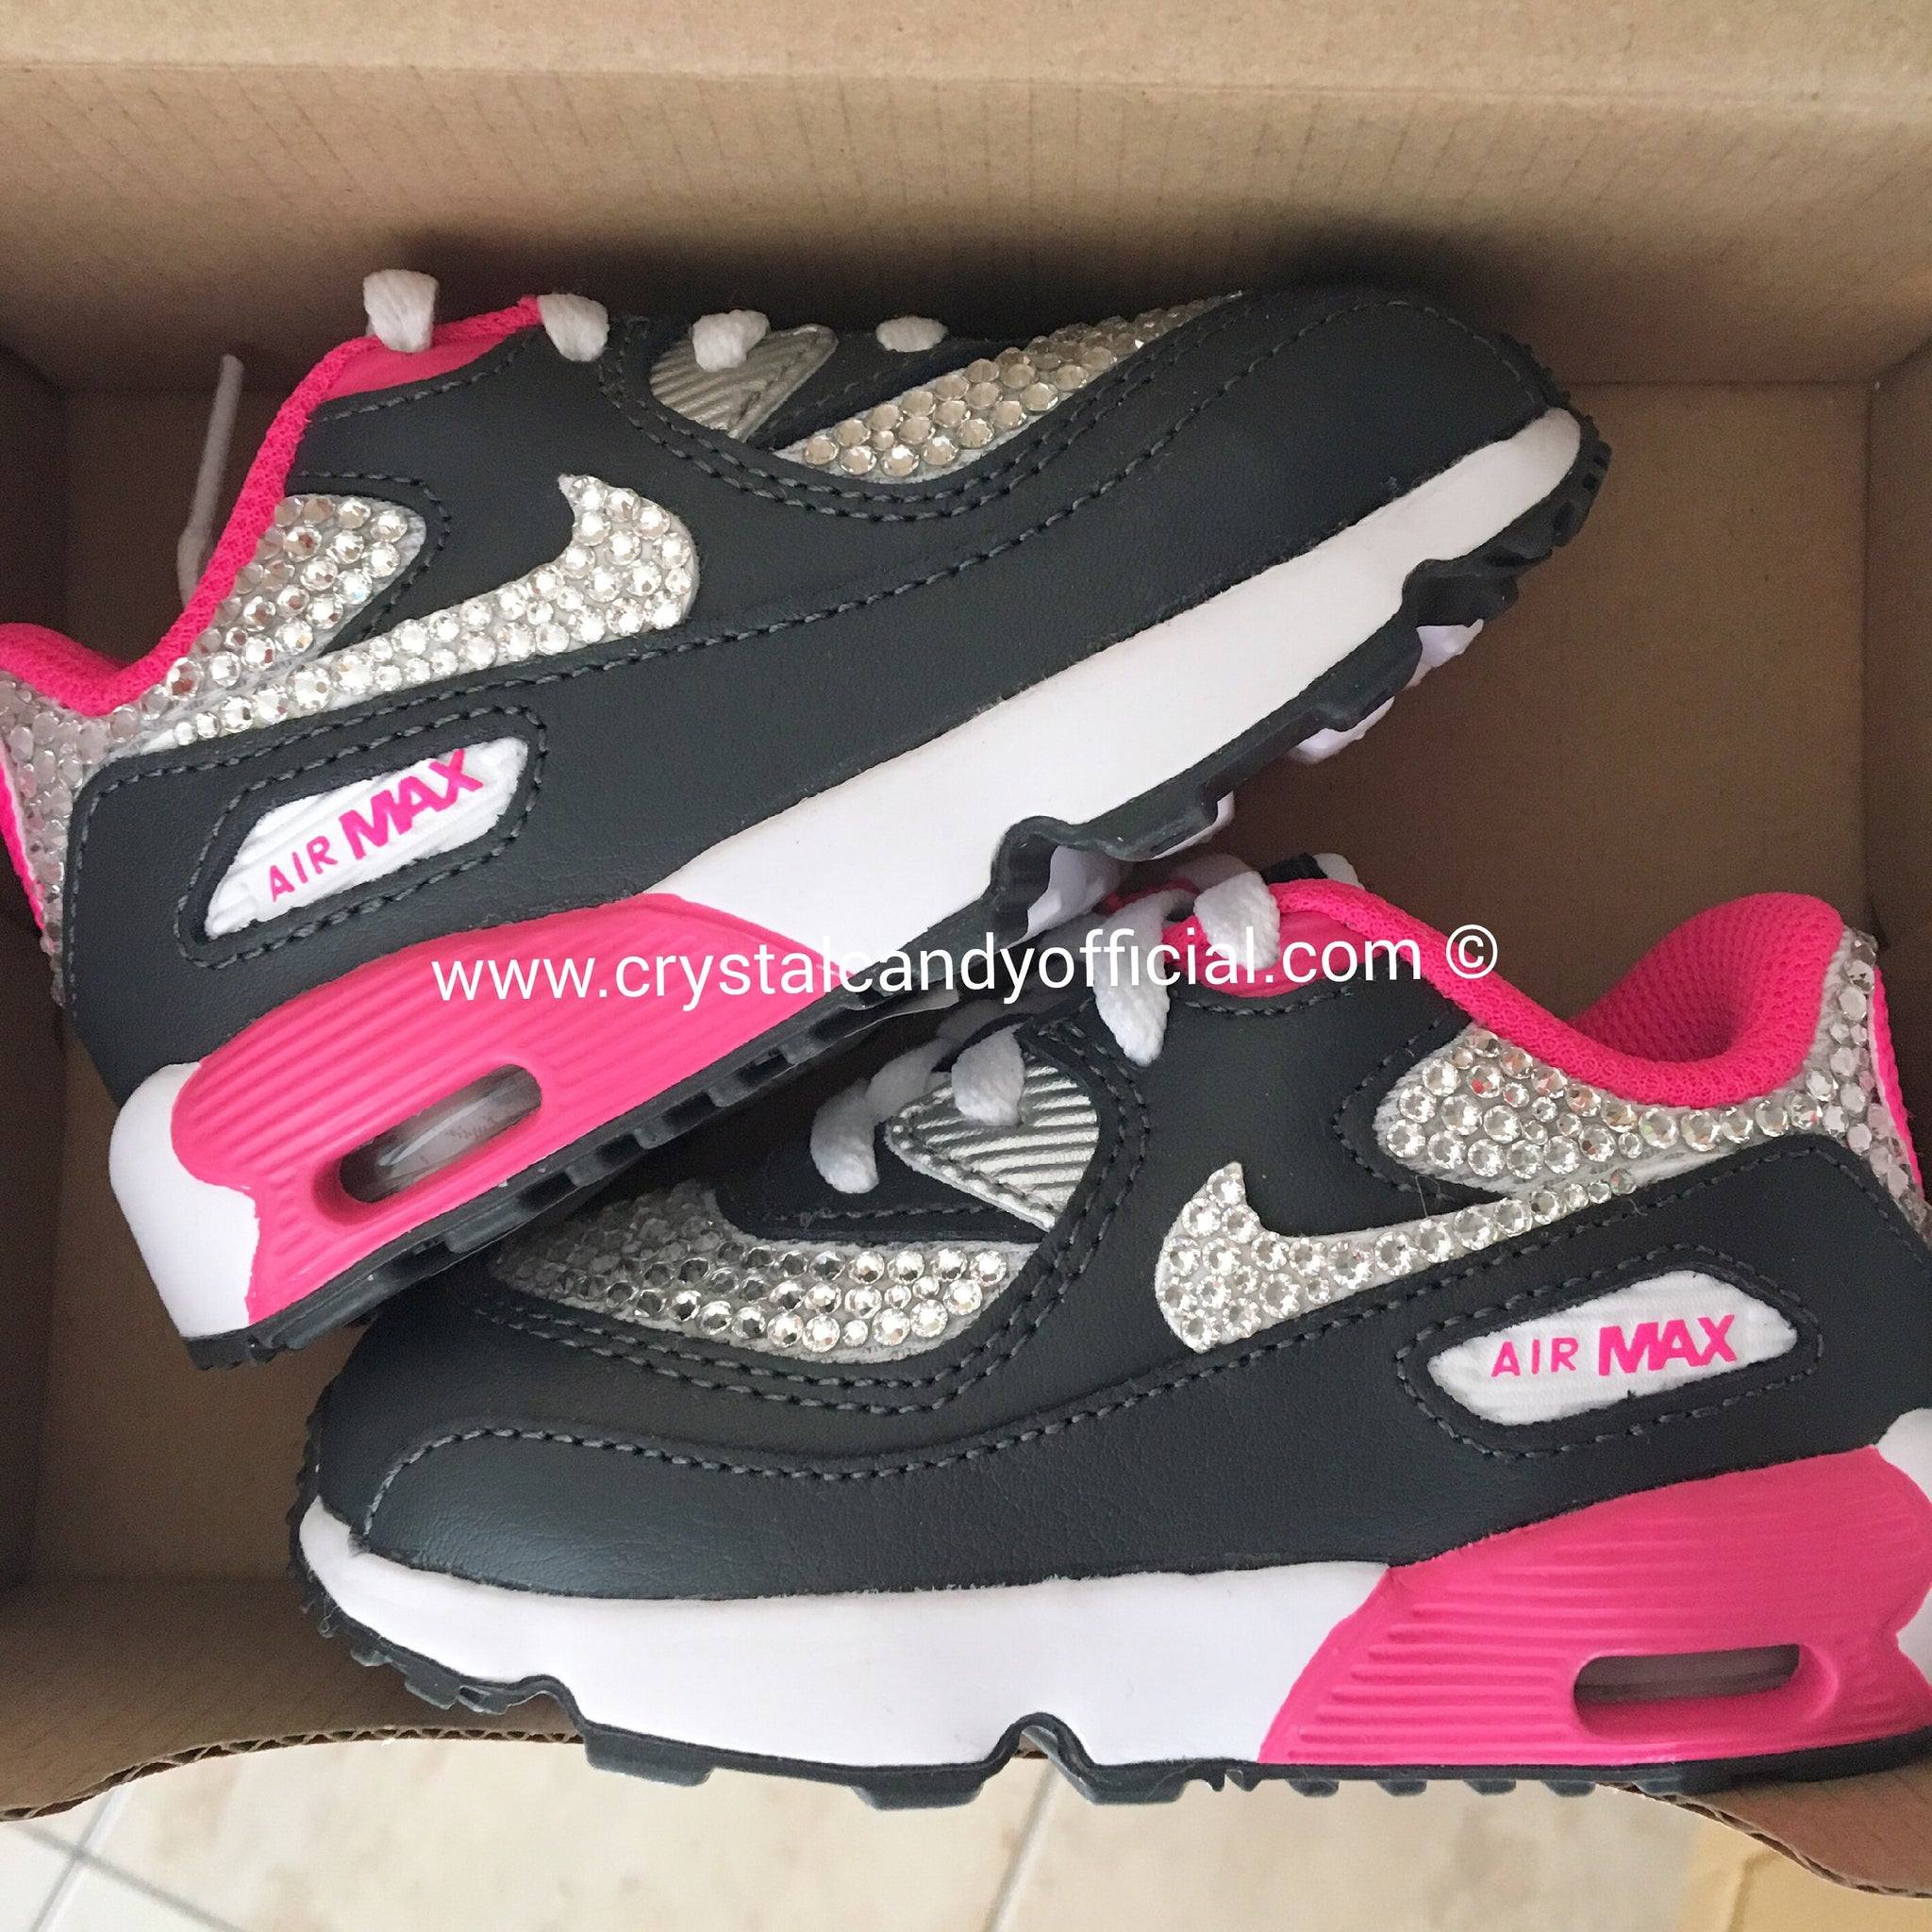 sports shoes c1193 eaccd CRYSTAL KIDS BABY PINK   BLACK NIKE AIR MAX 90 S (FULLY CRYSTALLISED) -  Crystal Candy Limited